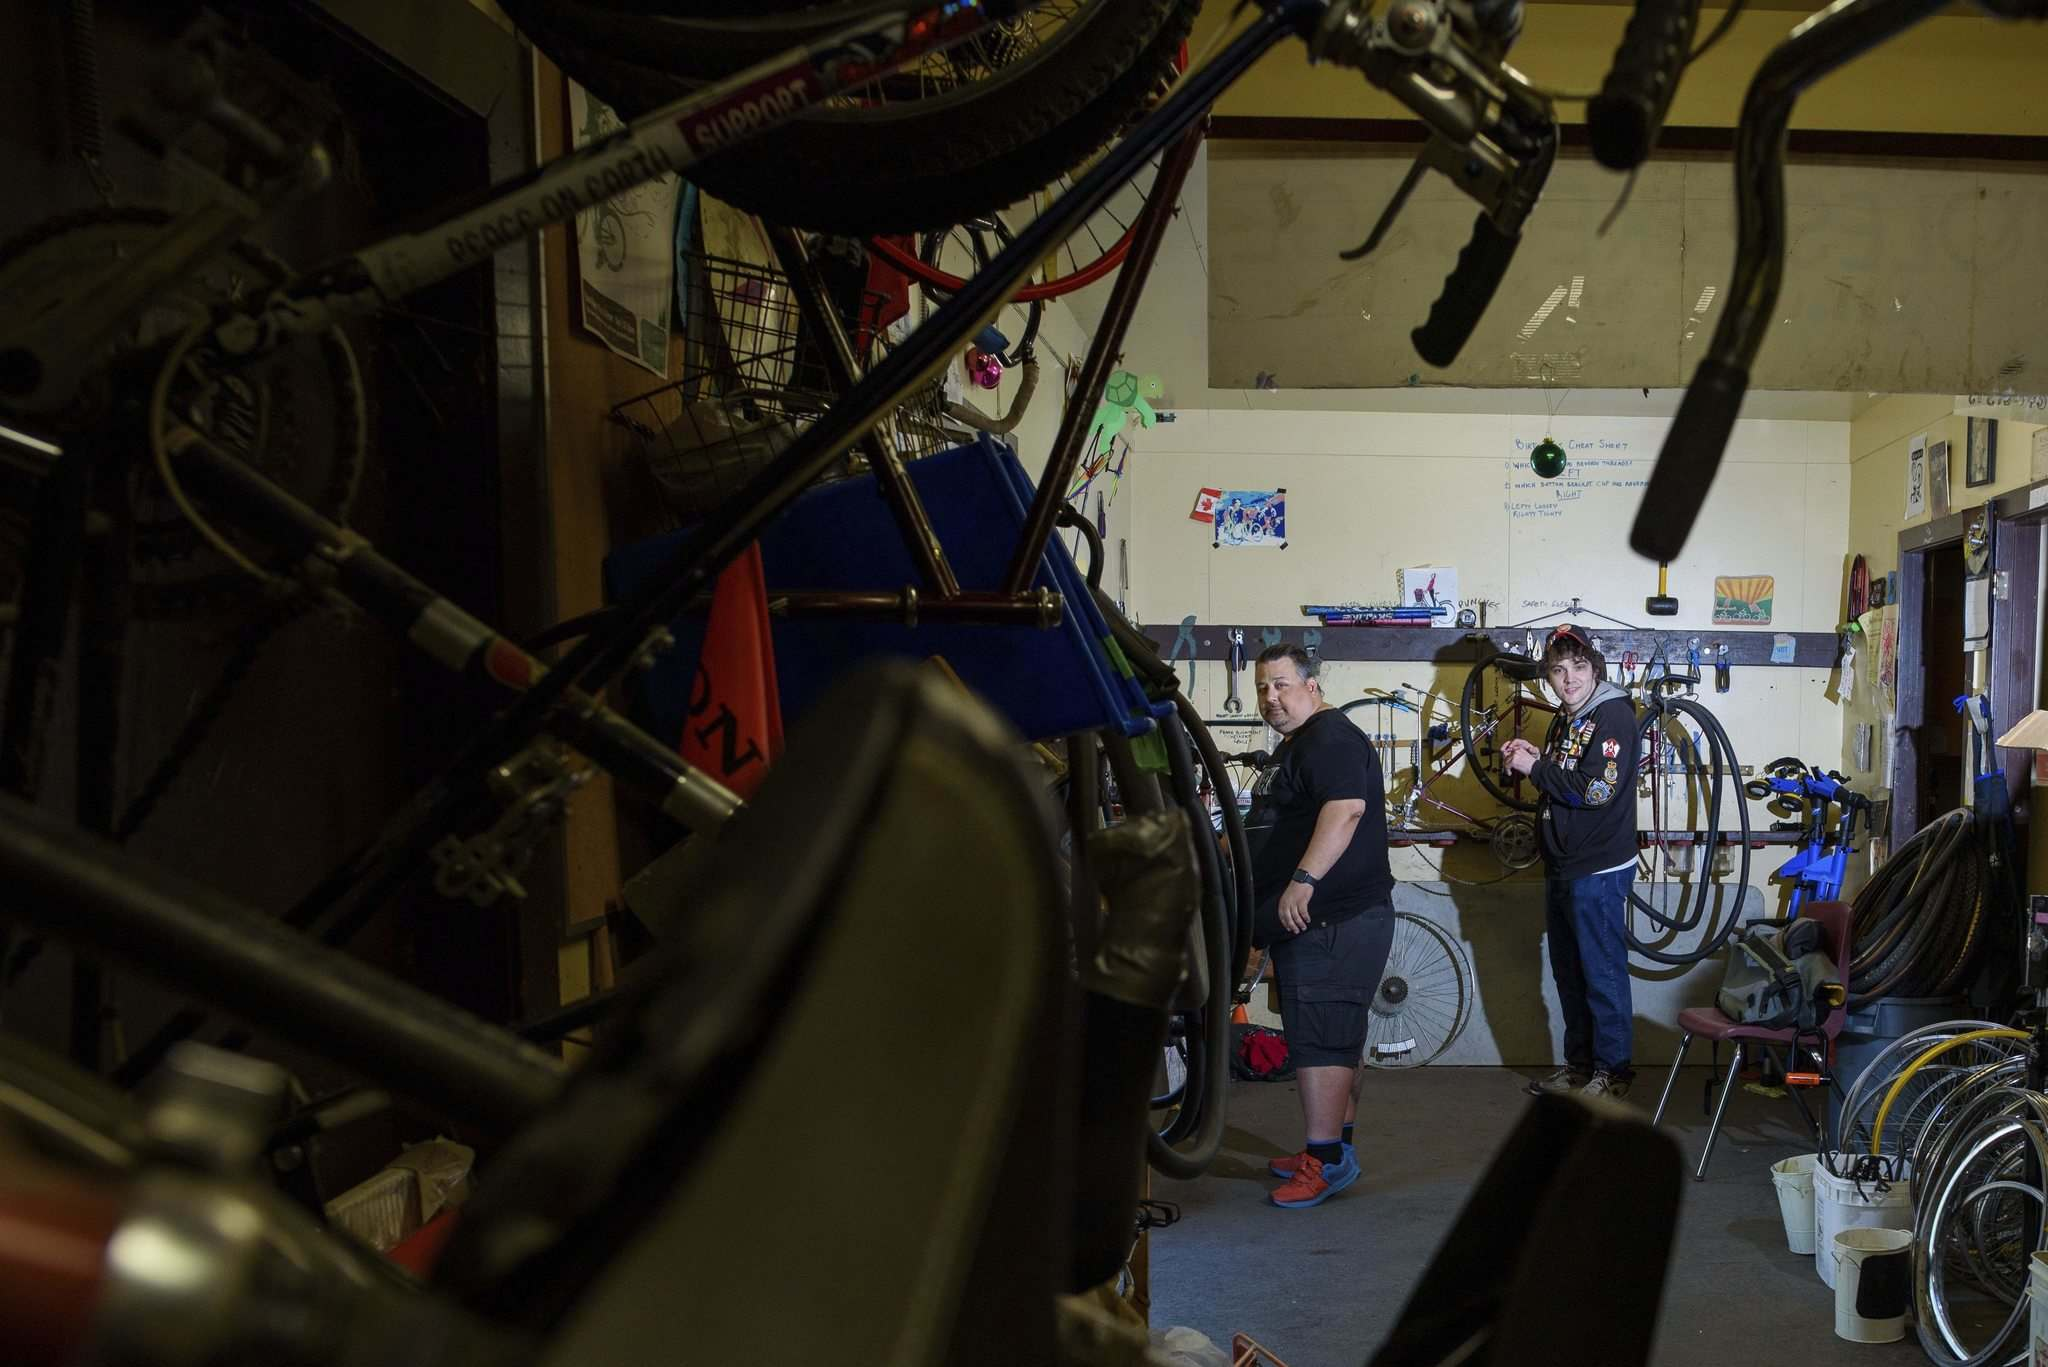 Maciejko and Charles Pearce (right), another volunteer, keep busy in the shop packed with bikes for repair. (Jesse Boily / Winnipeg Free Press)</p></p>